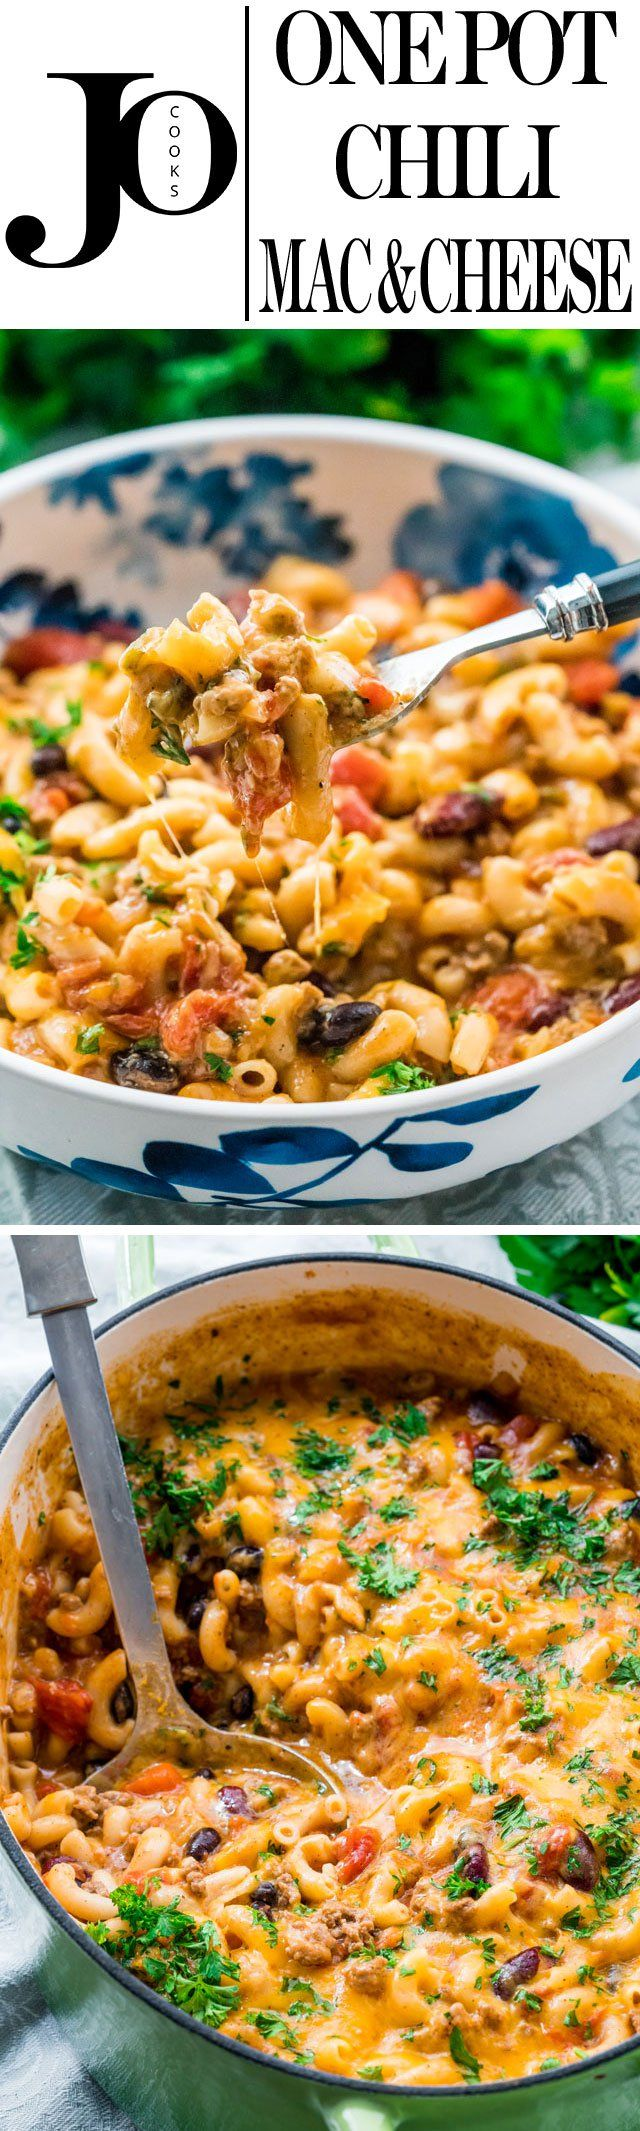 This One Pot Chili Mac and Cheese combines two great comfort foods all in one! Delicious and hearty, quick and comforting, perfect dinner for back to school and ready in under 30 minutes.